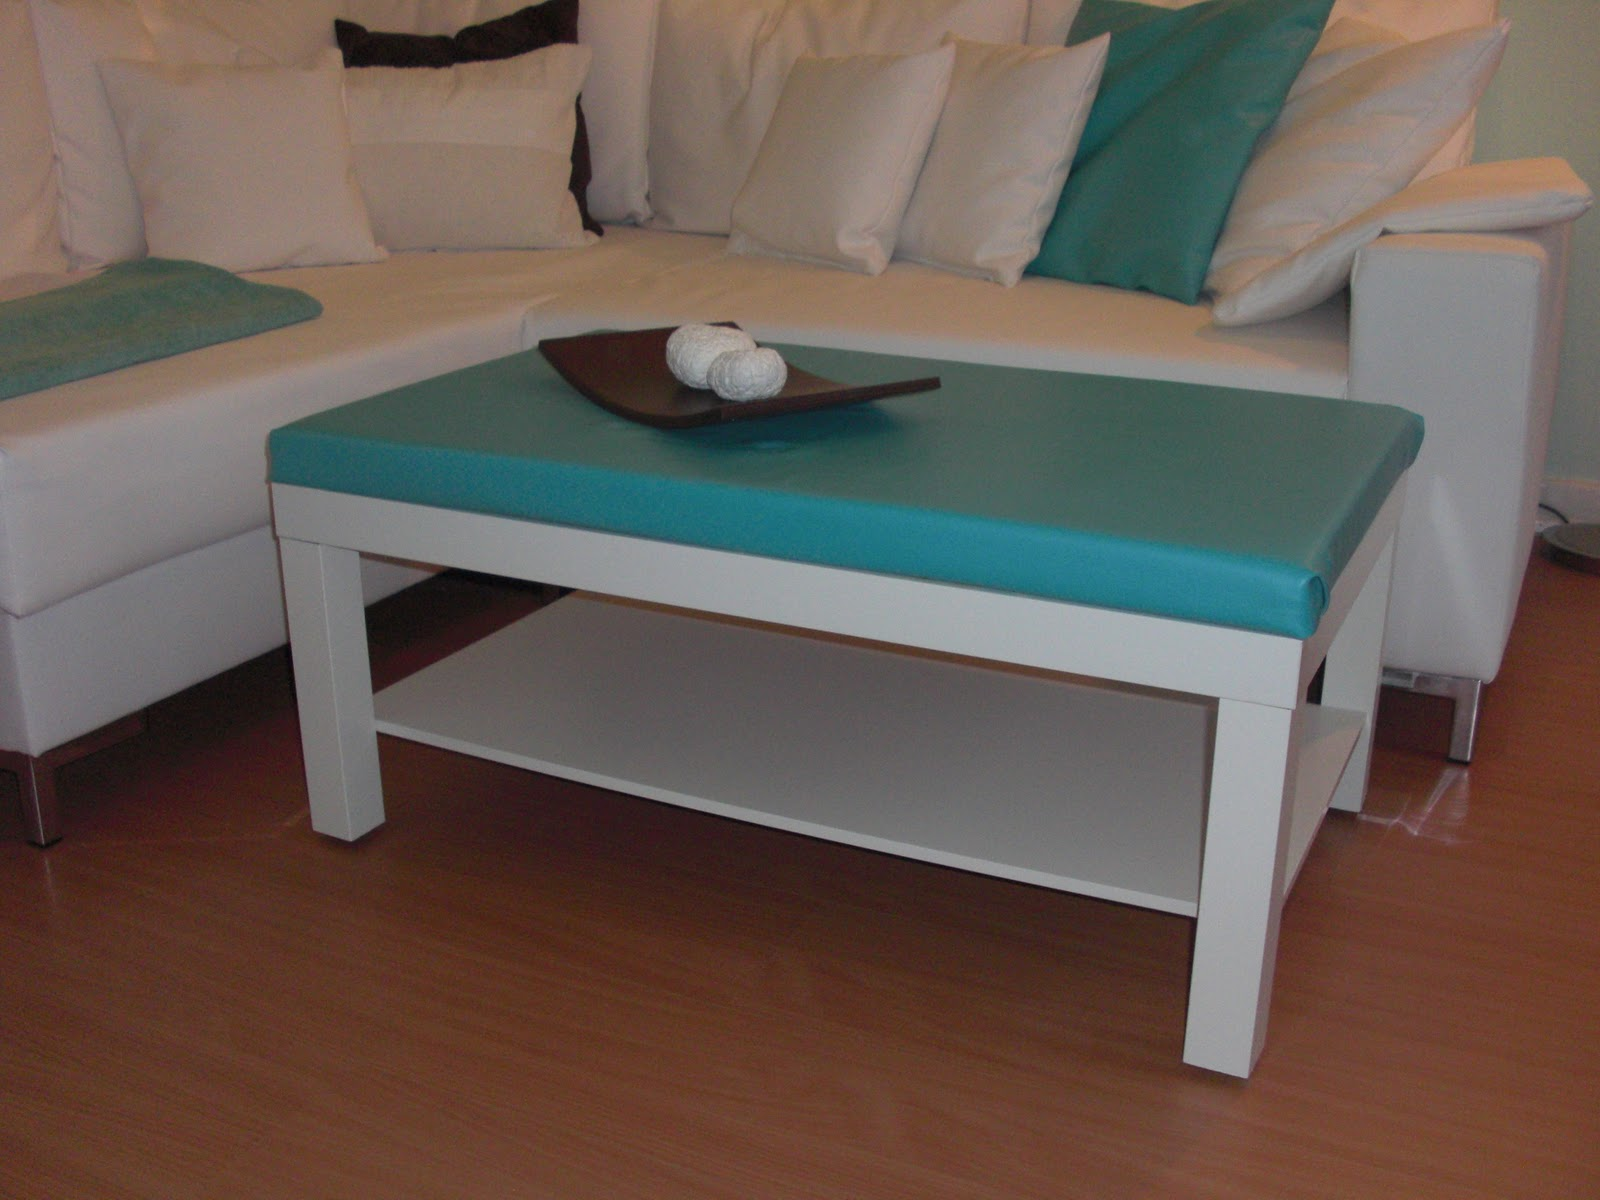 Couchtisch Ikea Hack 25 Best Ideas About Ikea Coffee Table On Pinterest Ikea Lack Hack